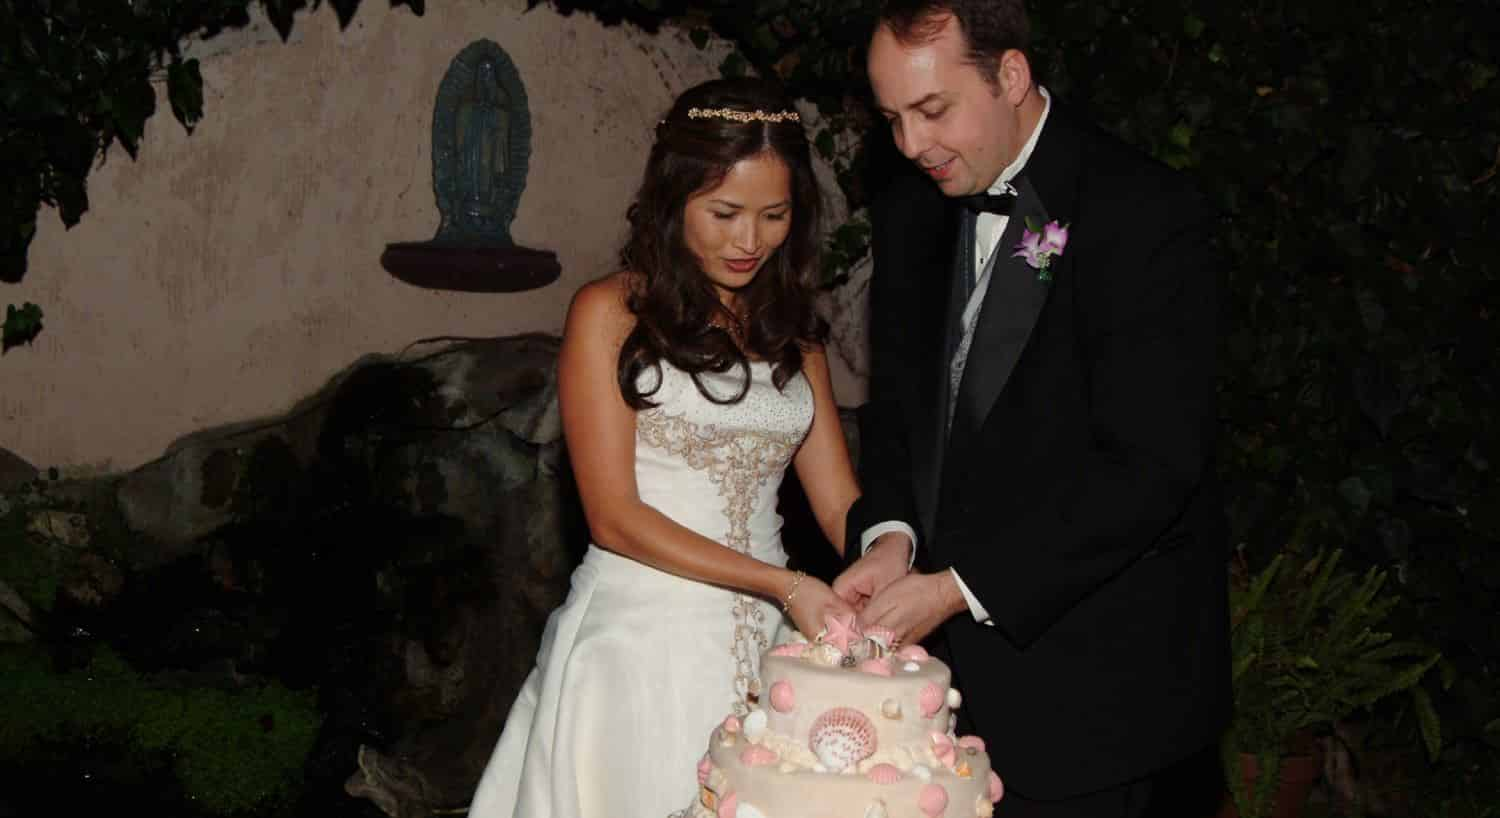 Bride and groom cutting a multi-teared pink wedding cake